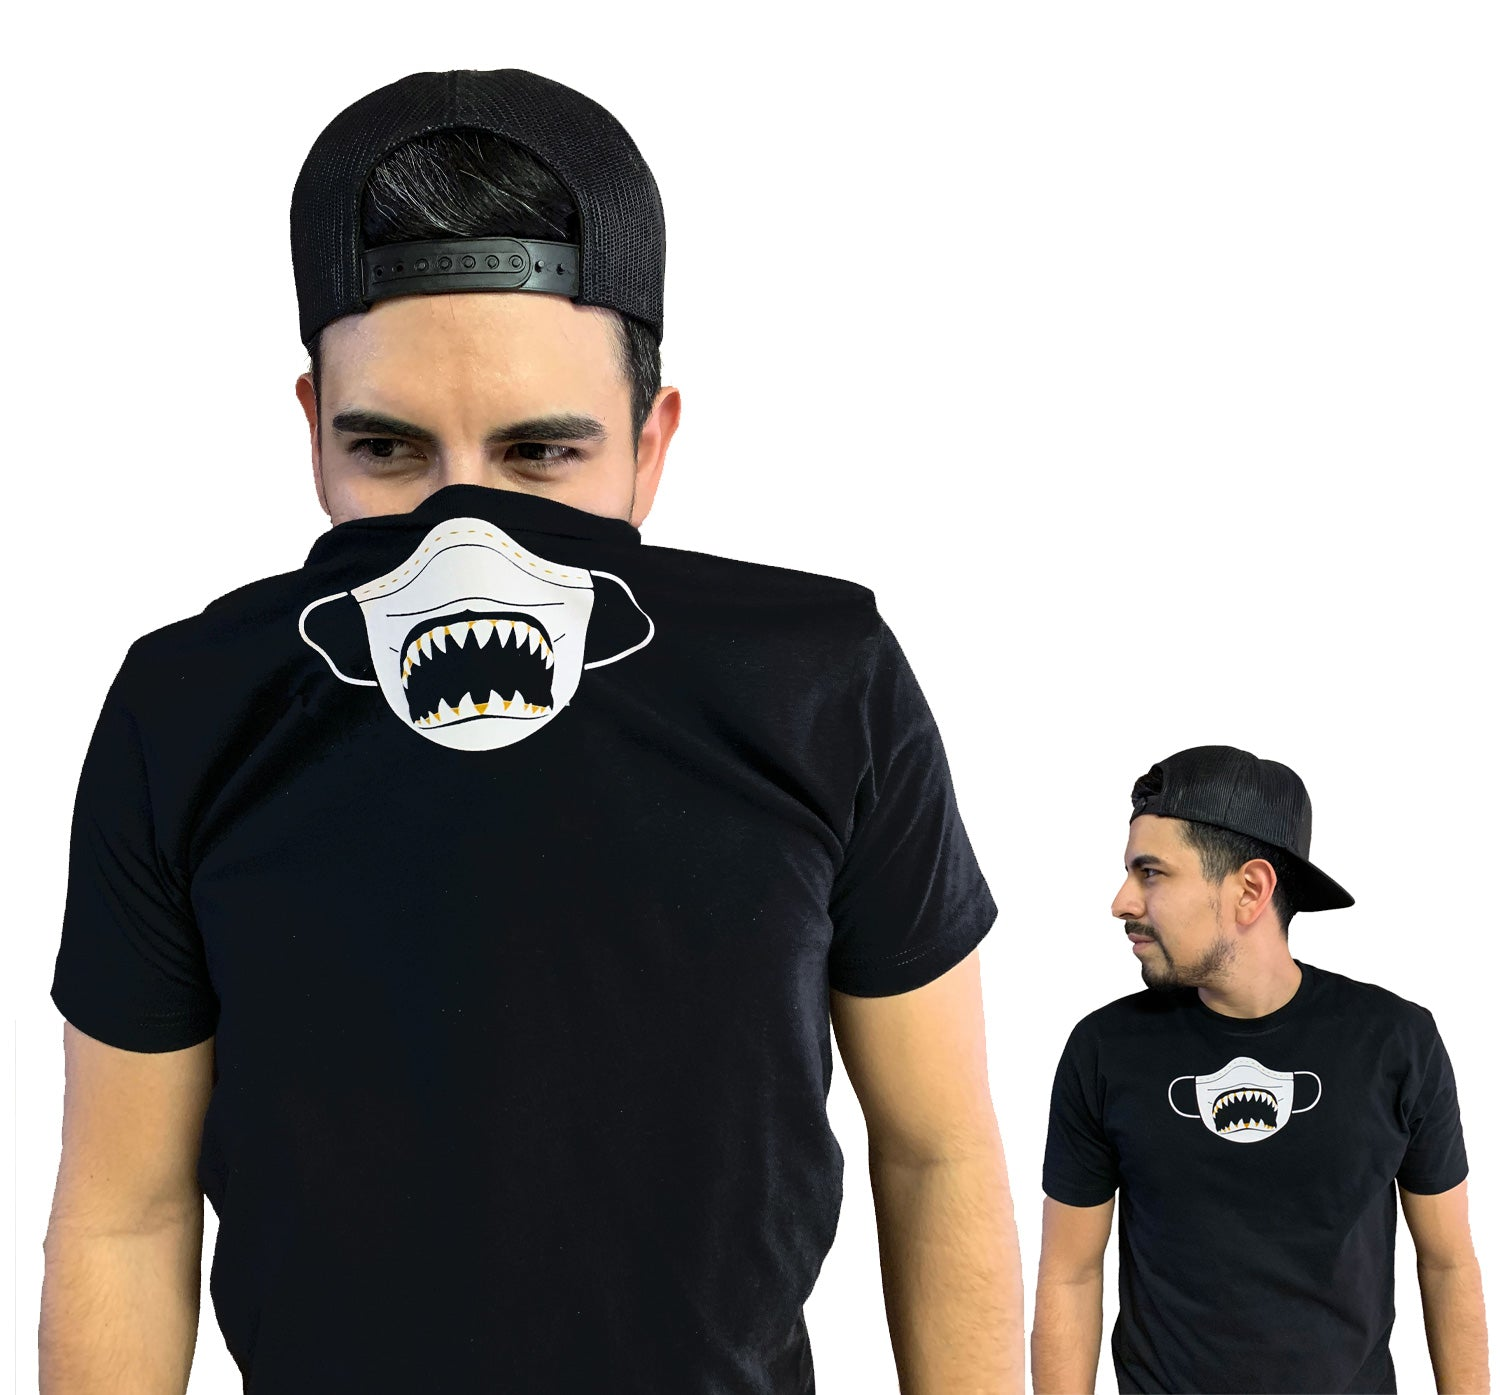 Jordan 6 DMP Sick Mask Shirt